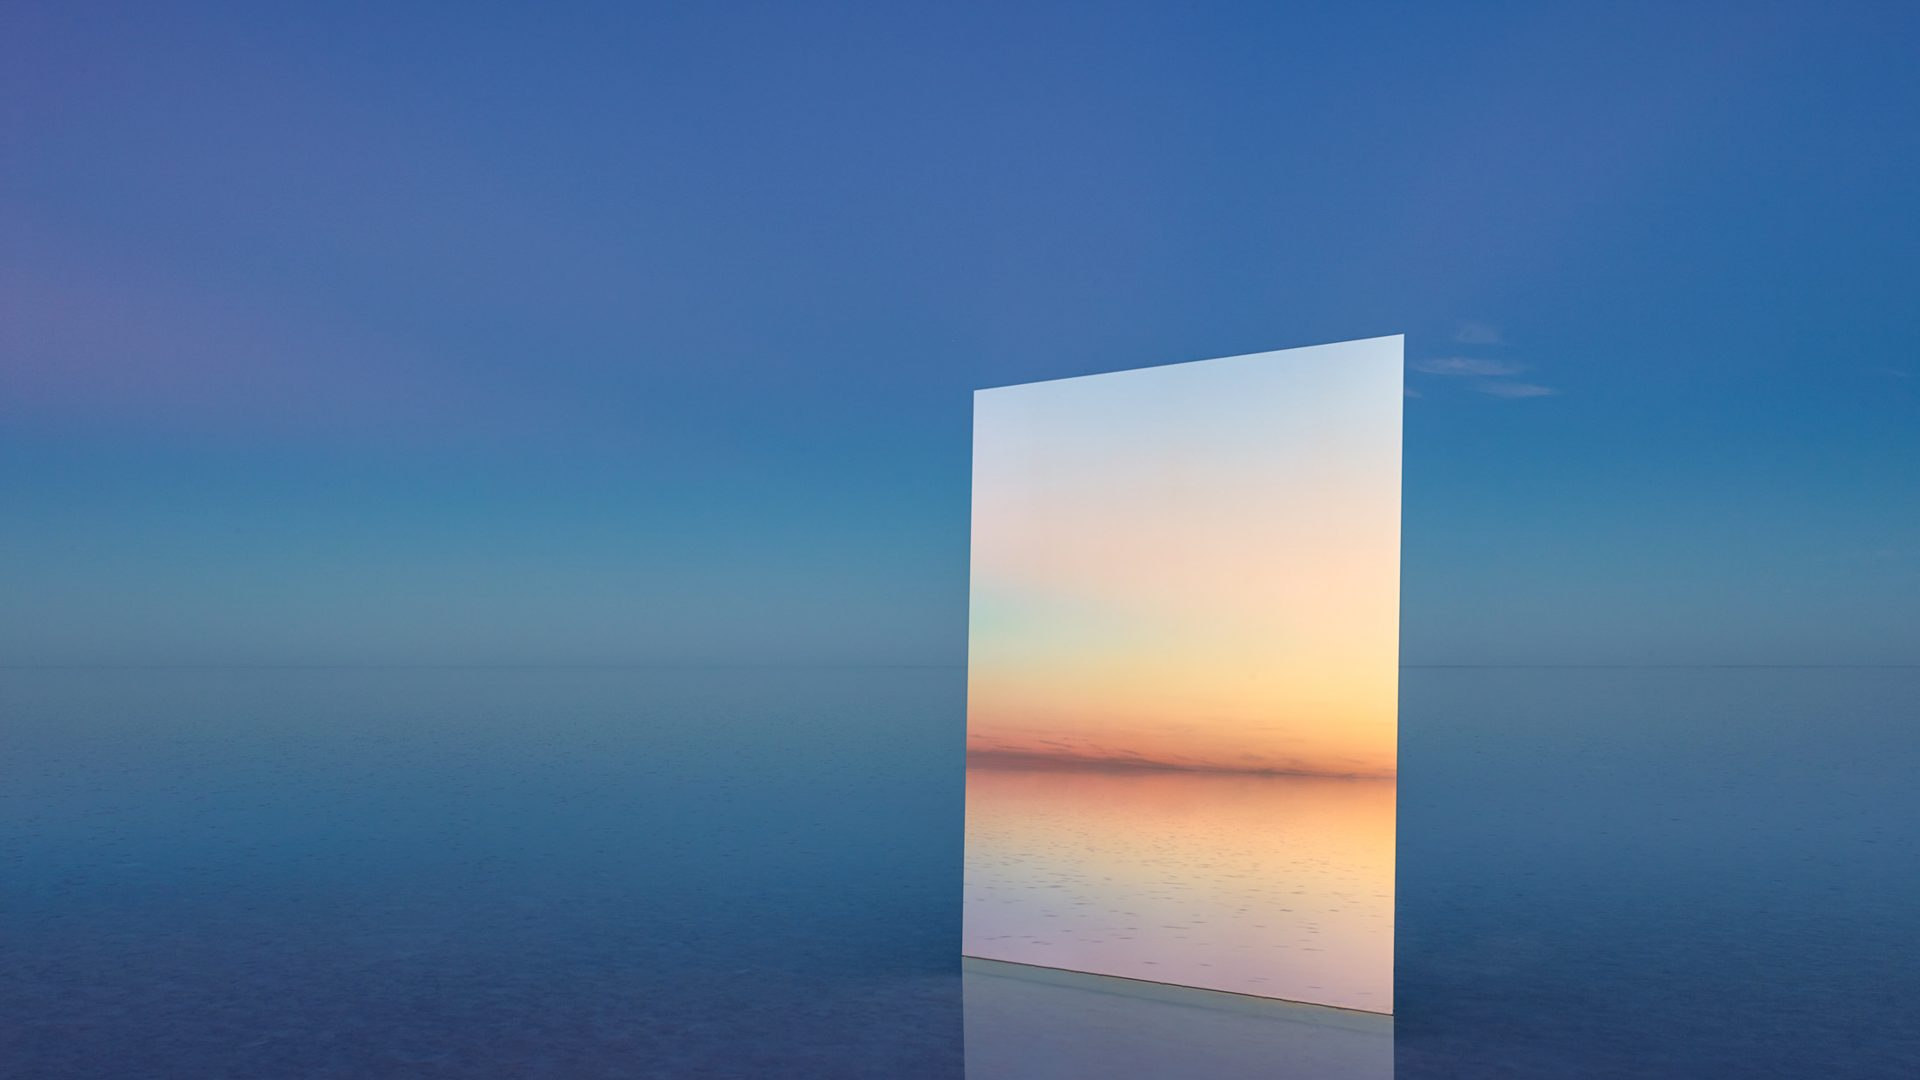 Large mirrors in the middle of Australia's shallow Lake Eyre.